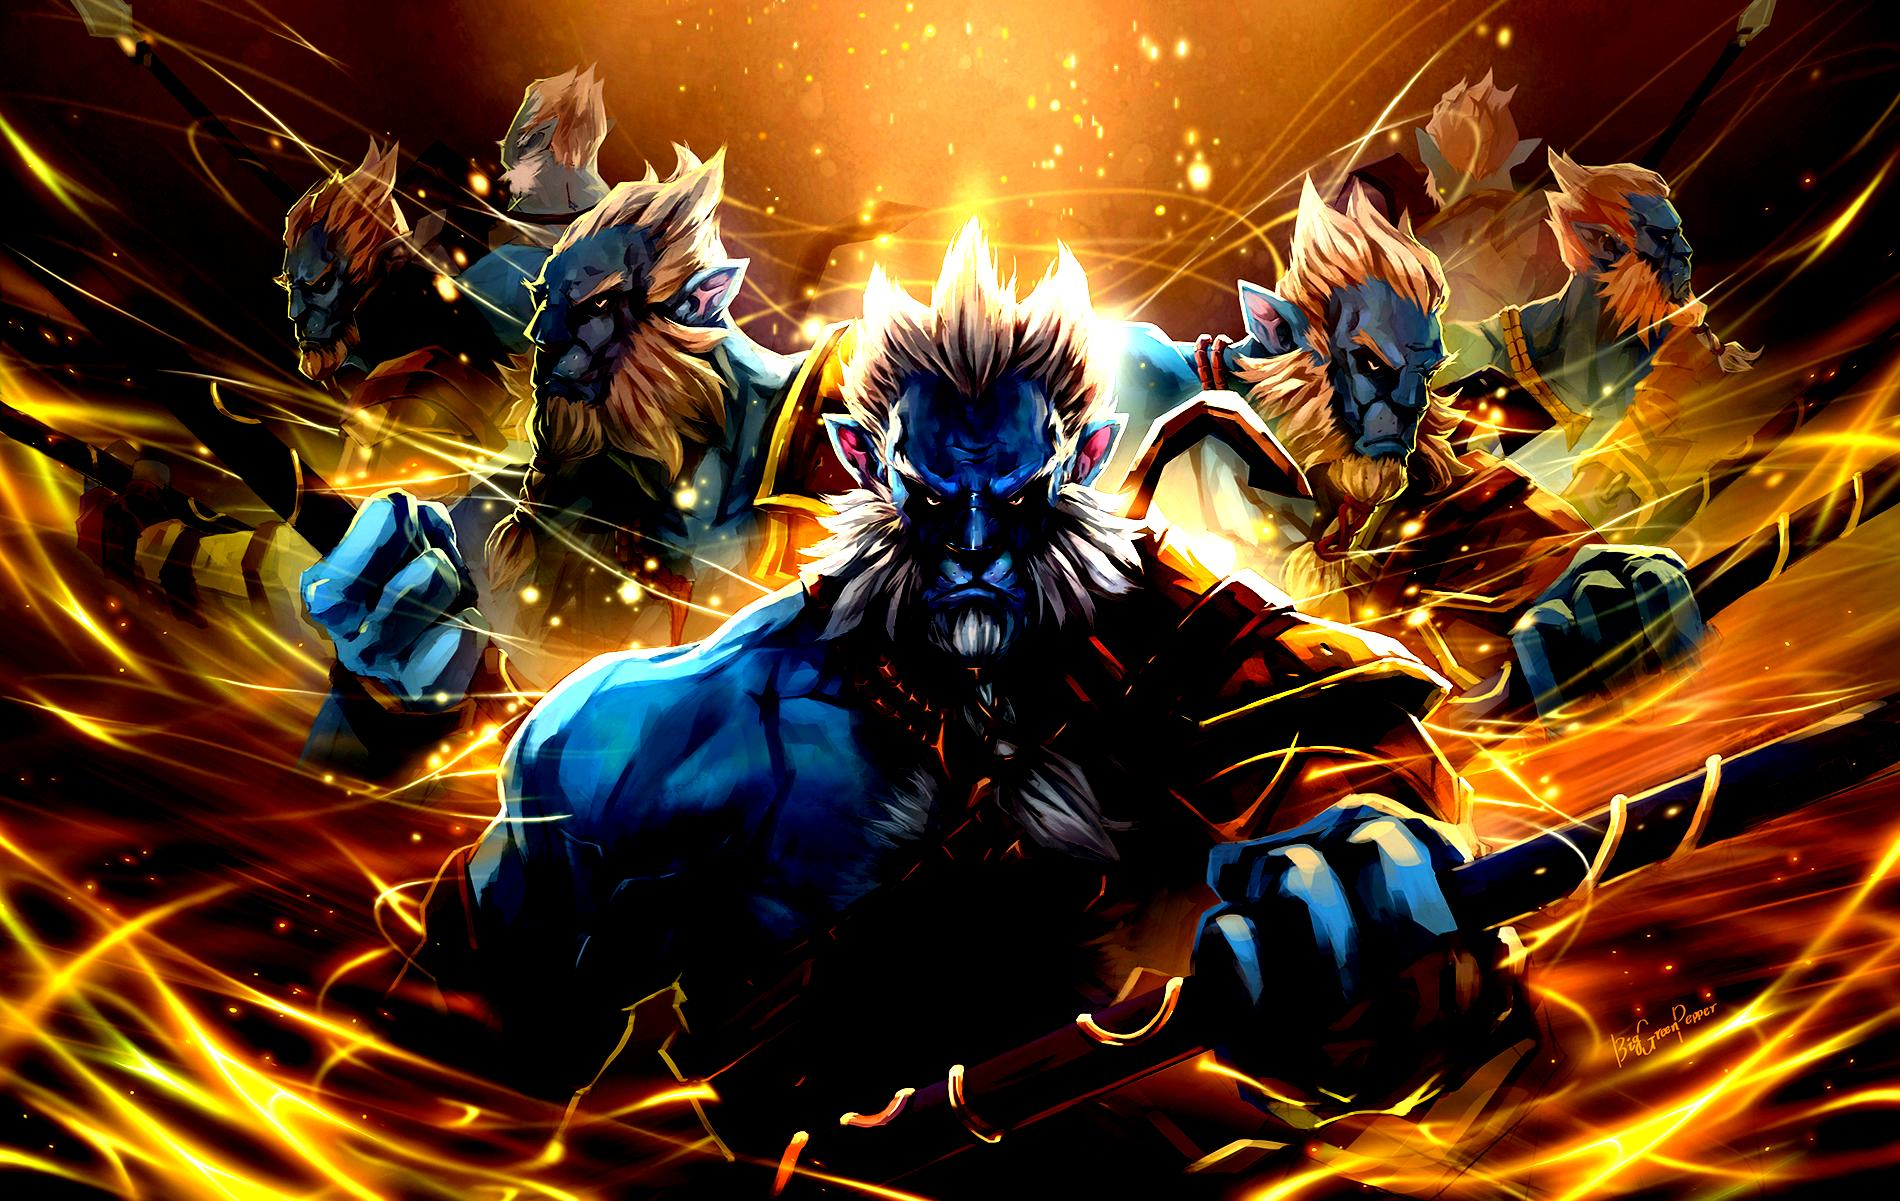 dota2 : phantom lancer hd wallpapers | 7wallpapers